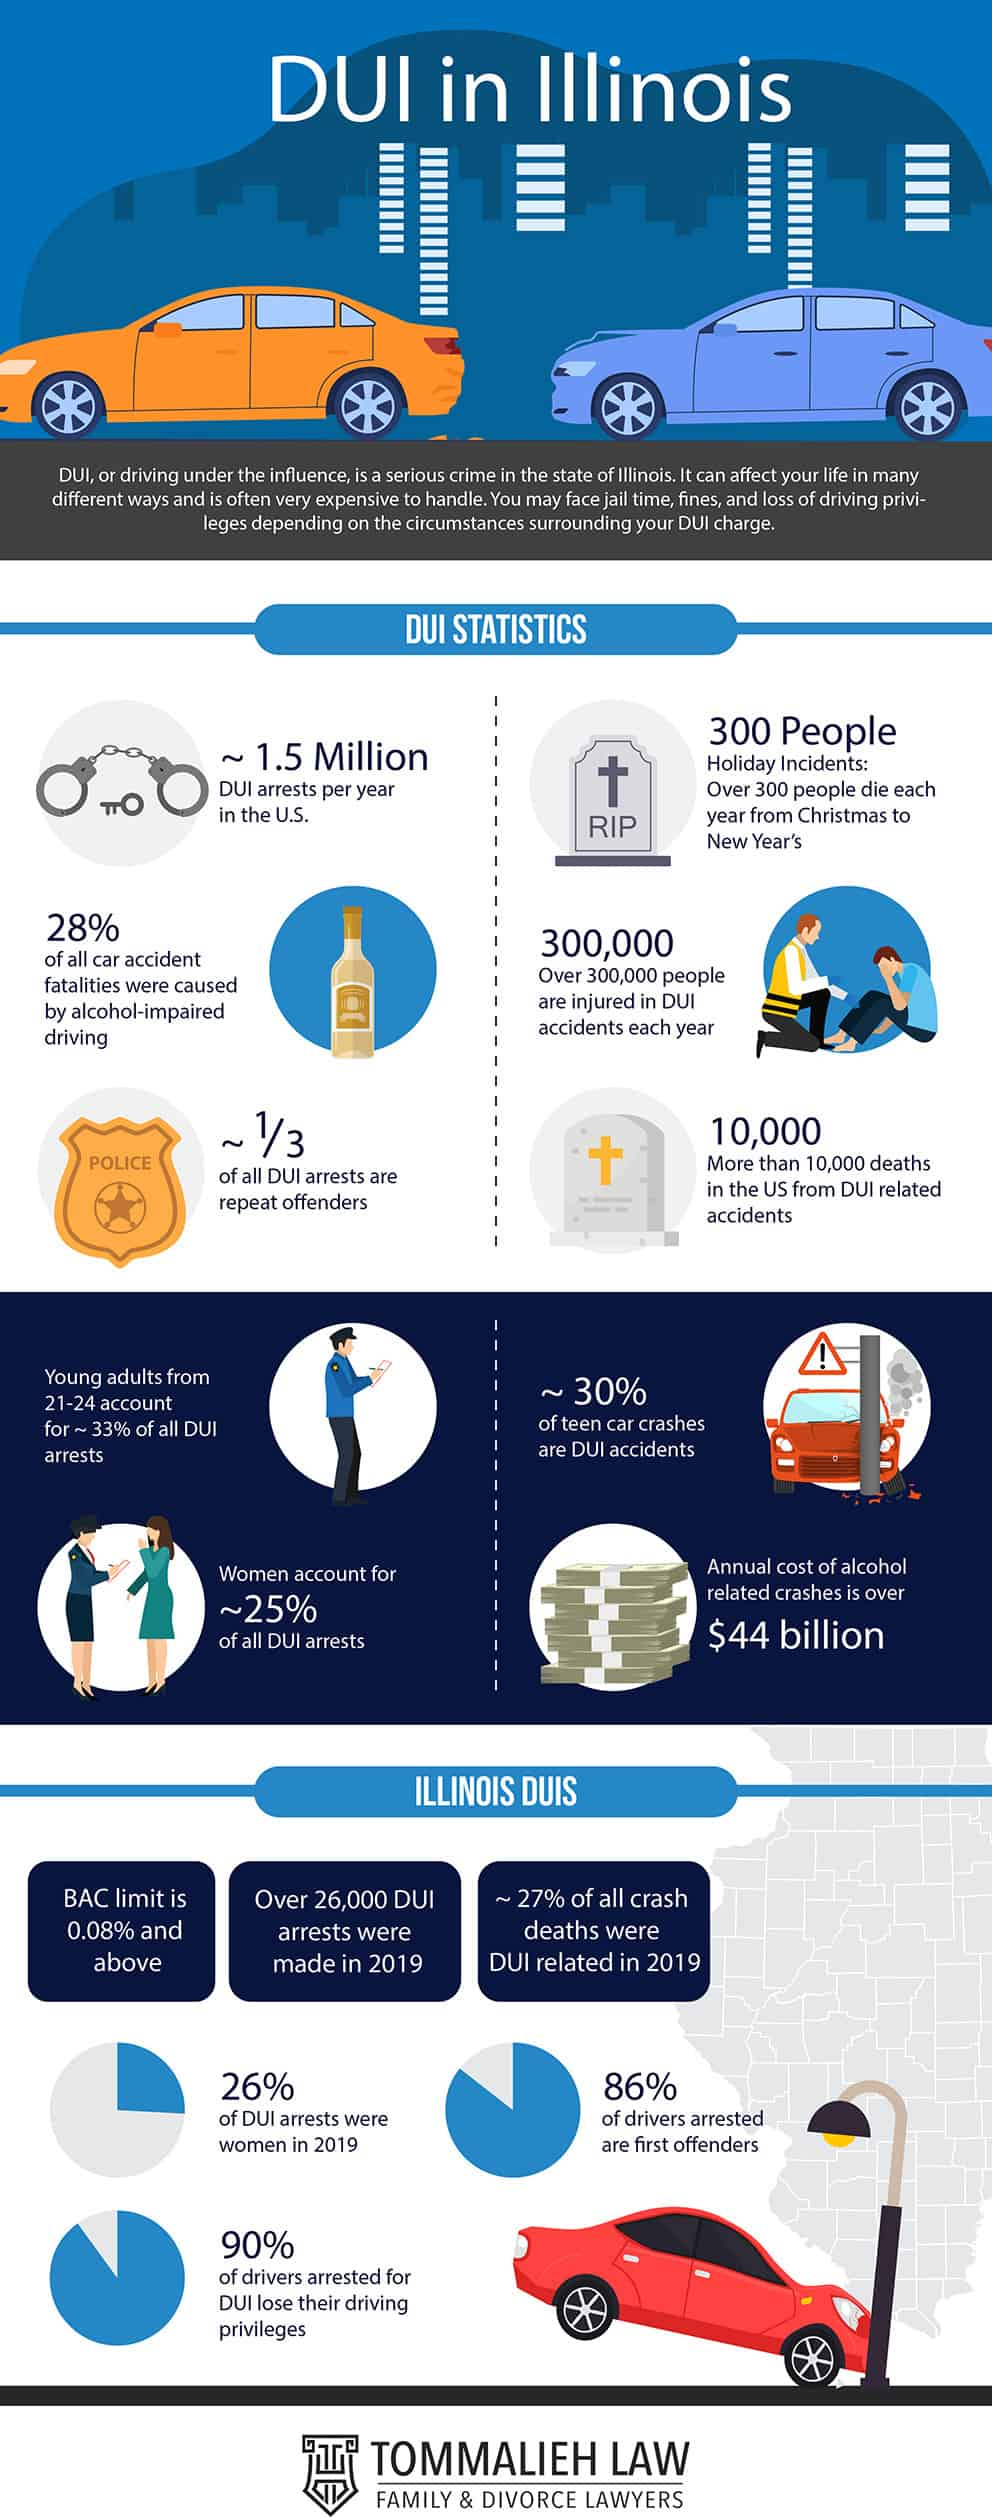 dui in Illinois infographic